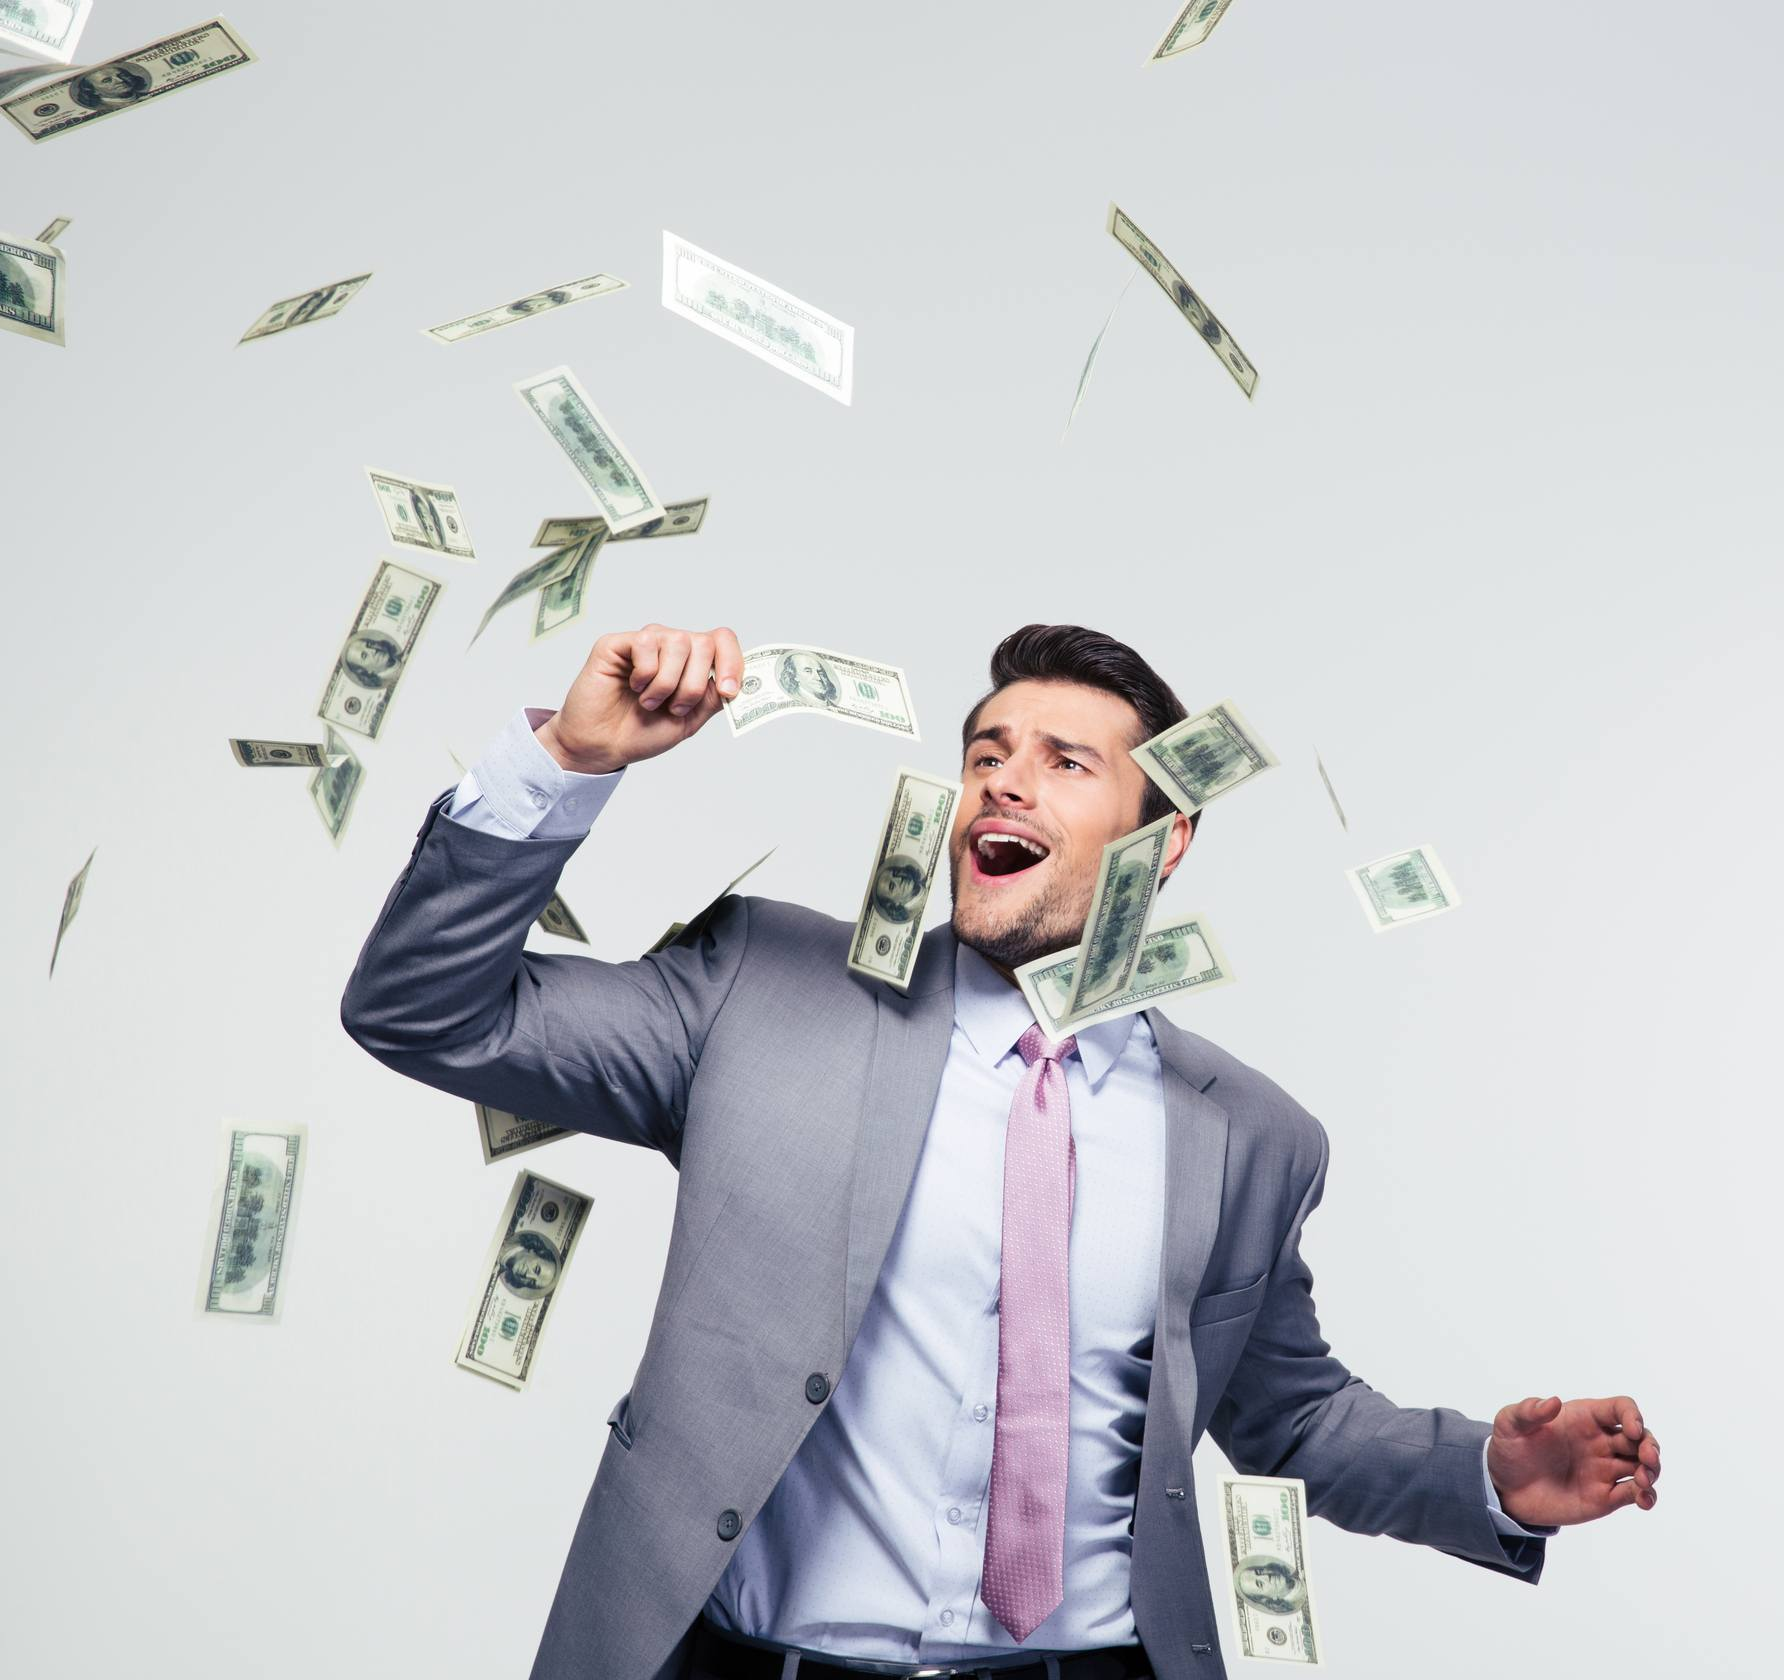 Man in suit with dropping money